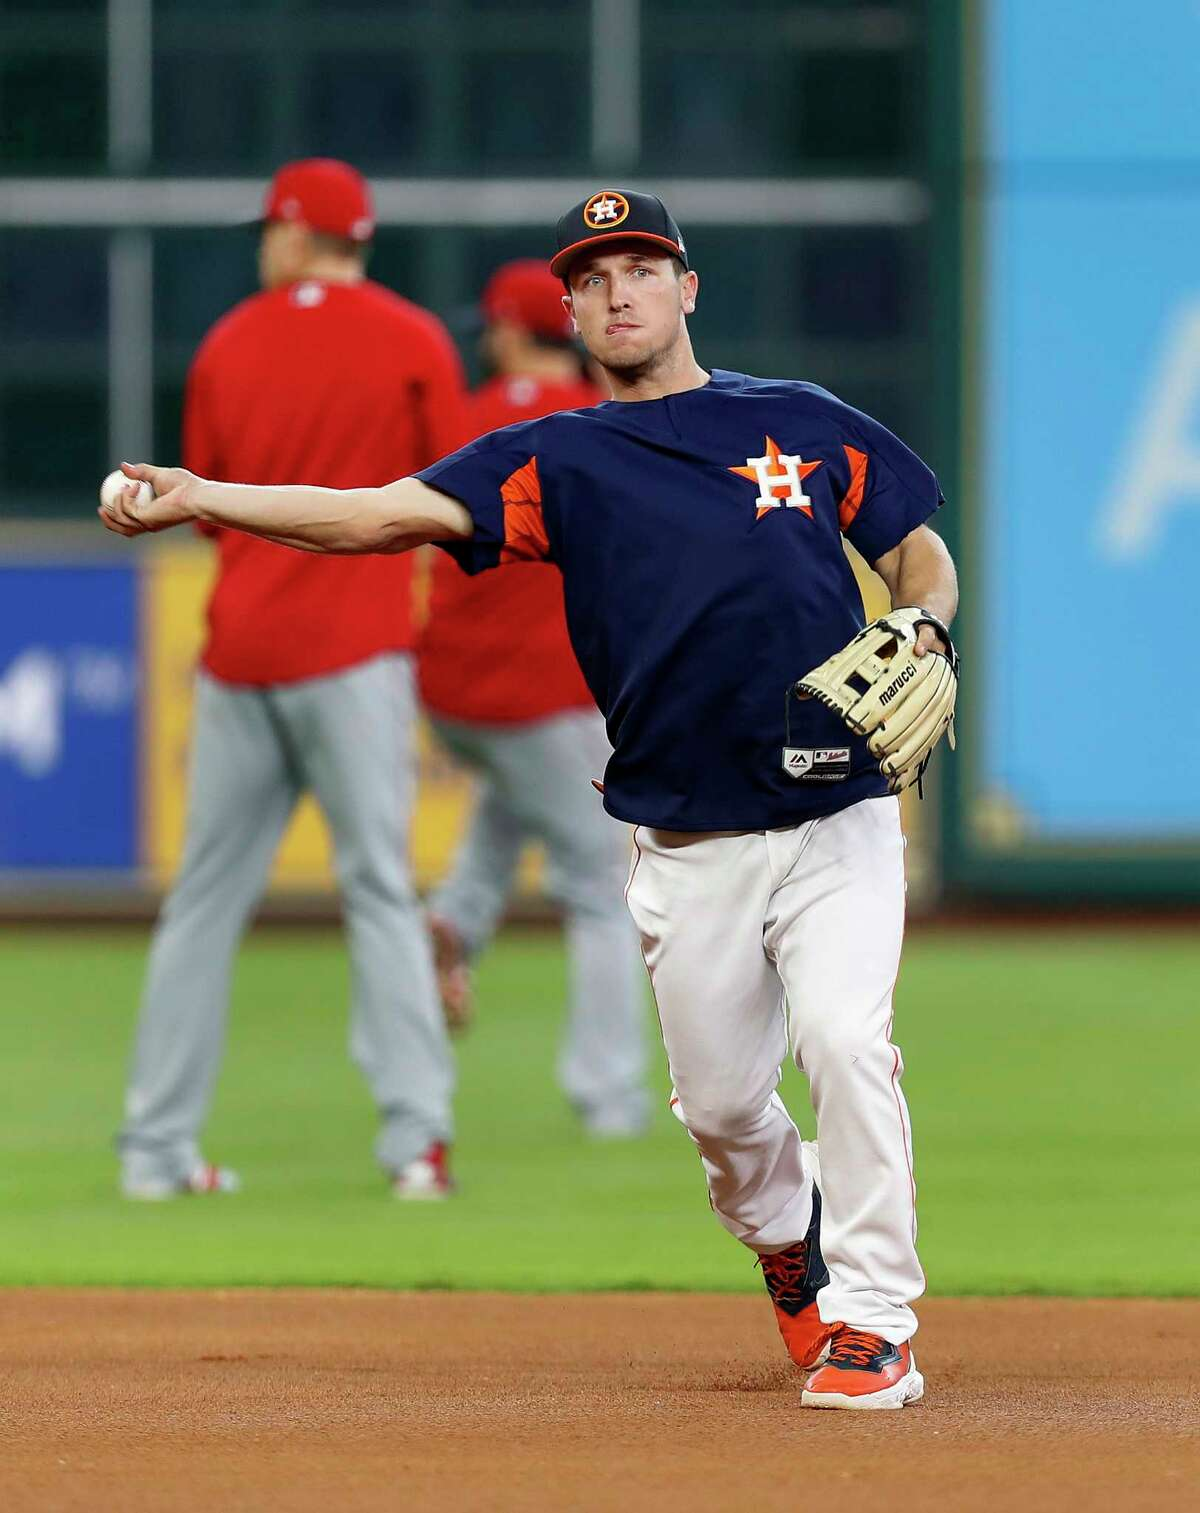 Houston Astros third baseman Alex Bregman runs drills during BP at short as Carlos Correa will be out of the lineup with a bruised hand, during tonight's MLB baseball game at Minute Maid Park, 2017, in Houston.